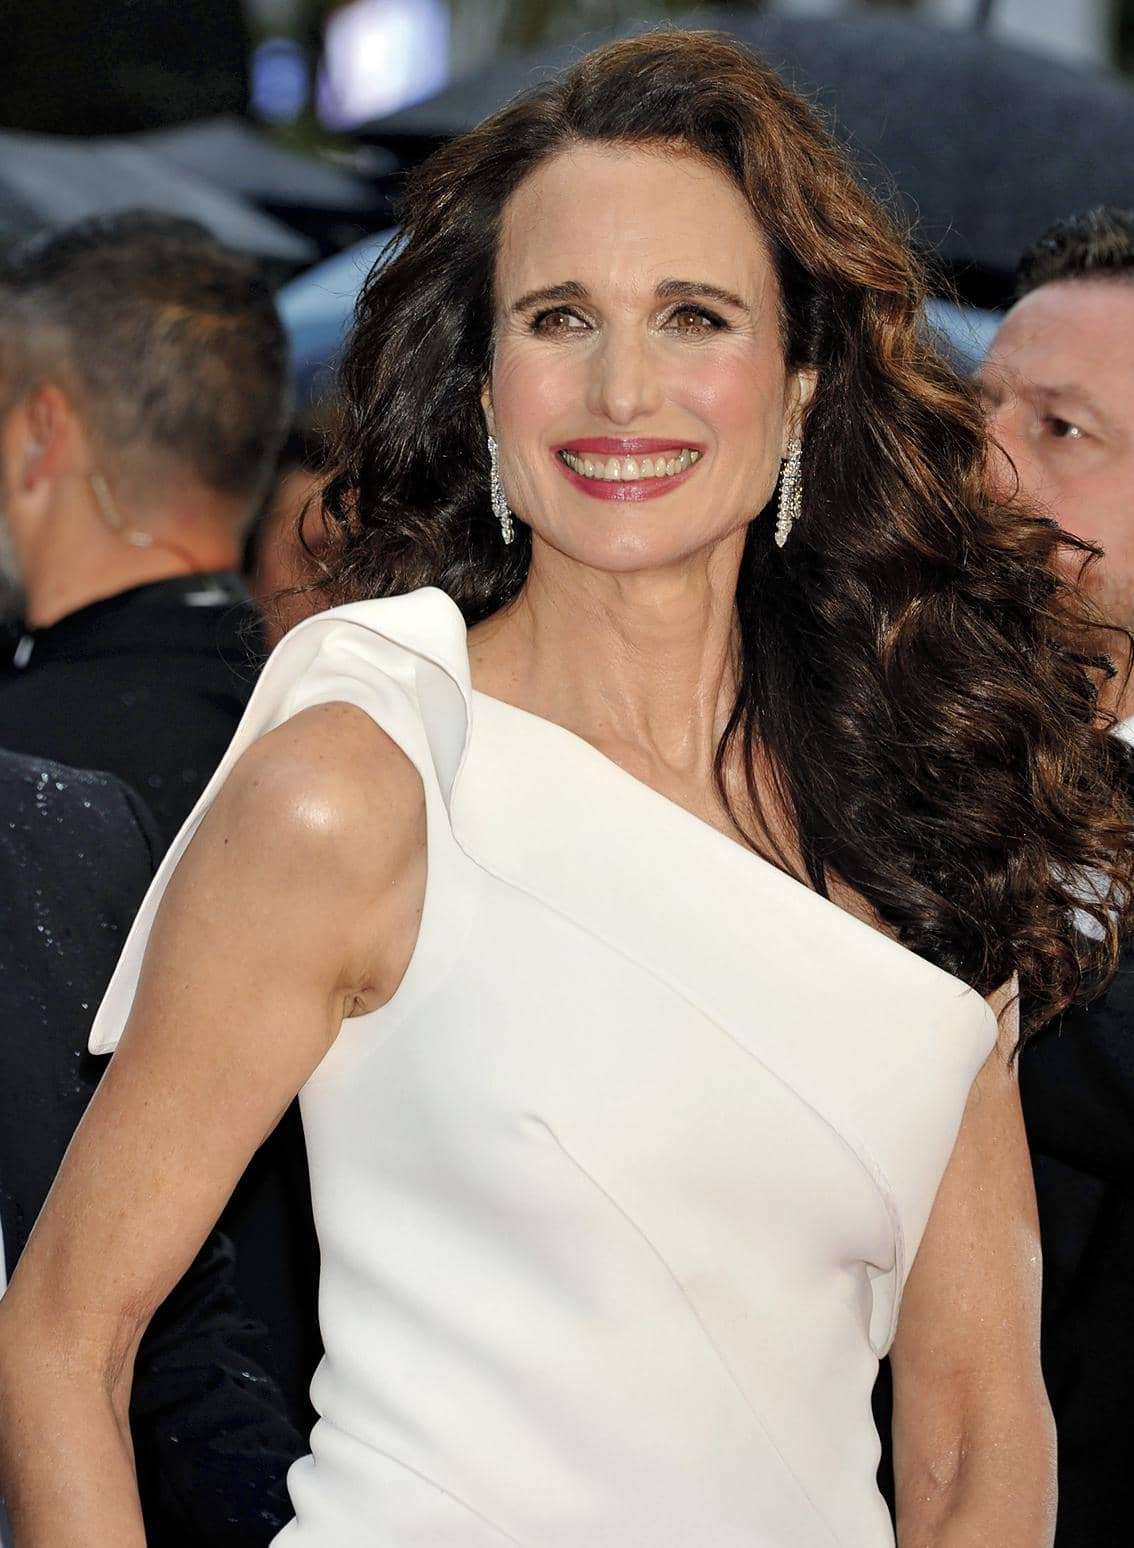 Andie Macdowell Bares All